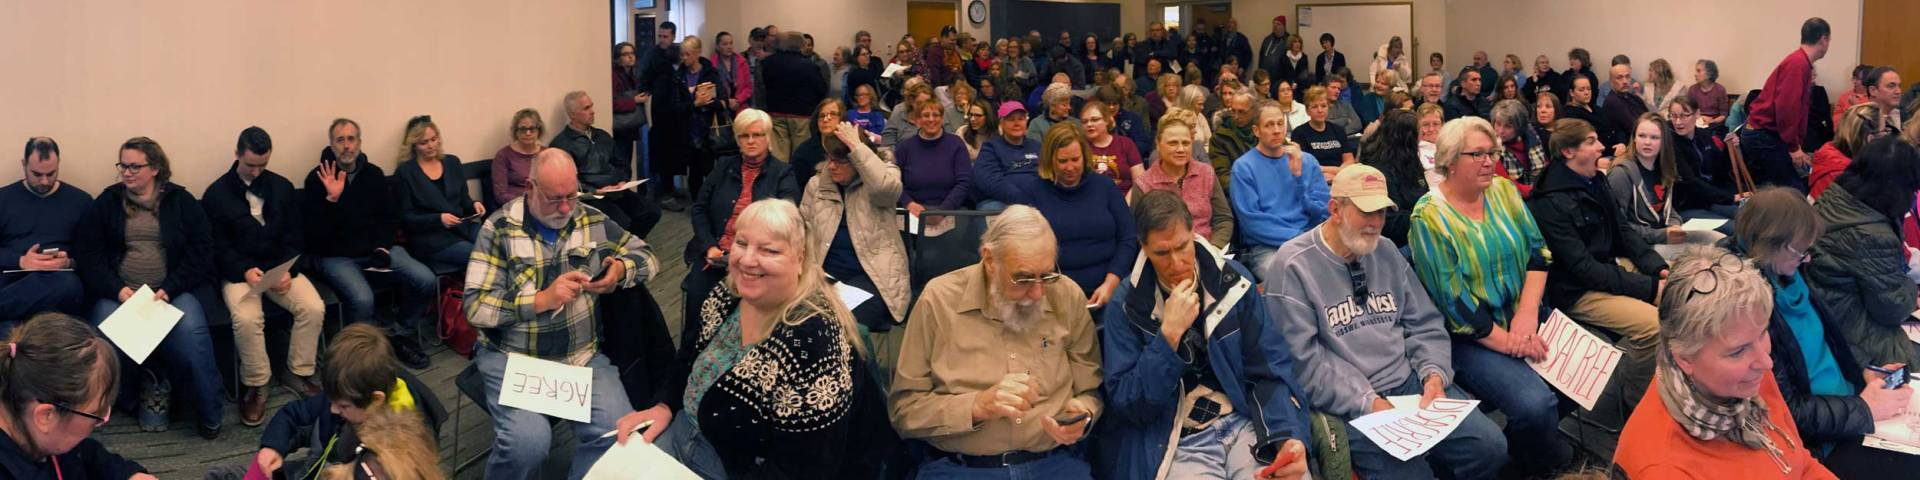 Town hall in CD2 without Jason Lewis